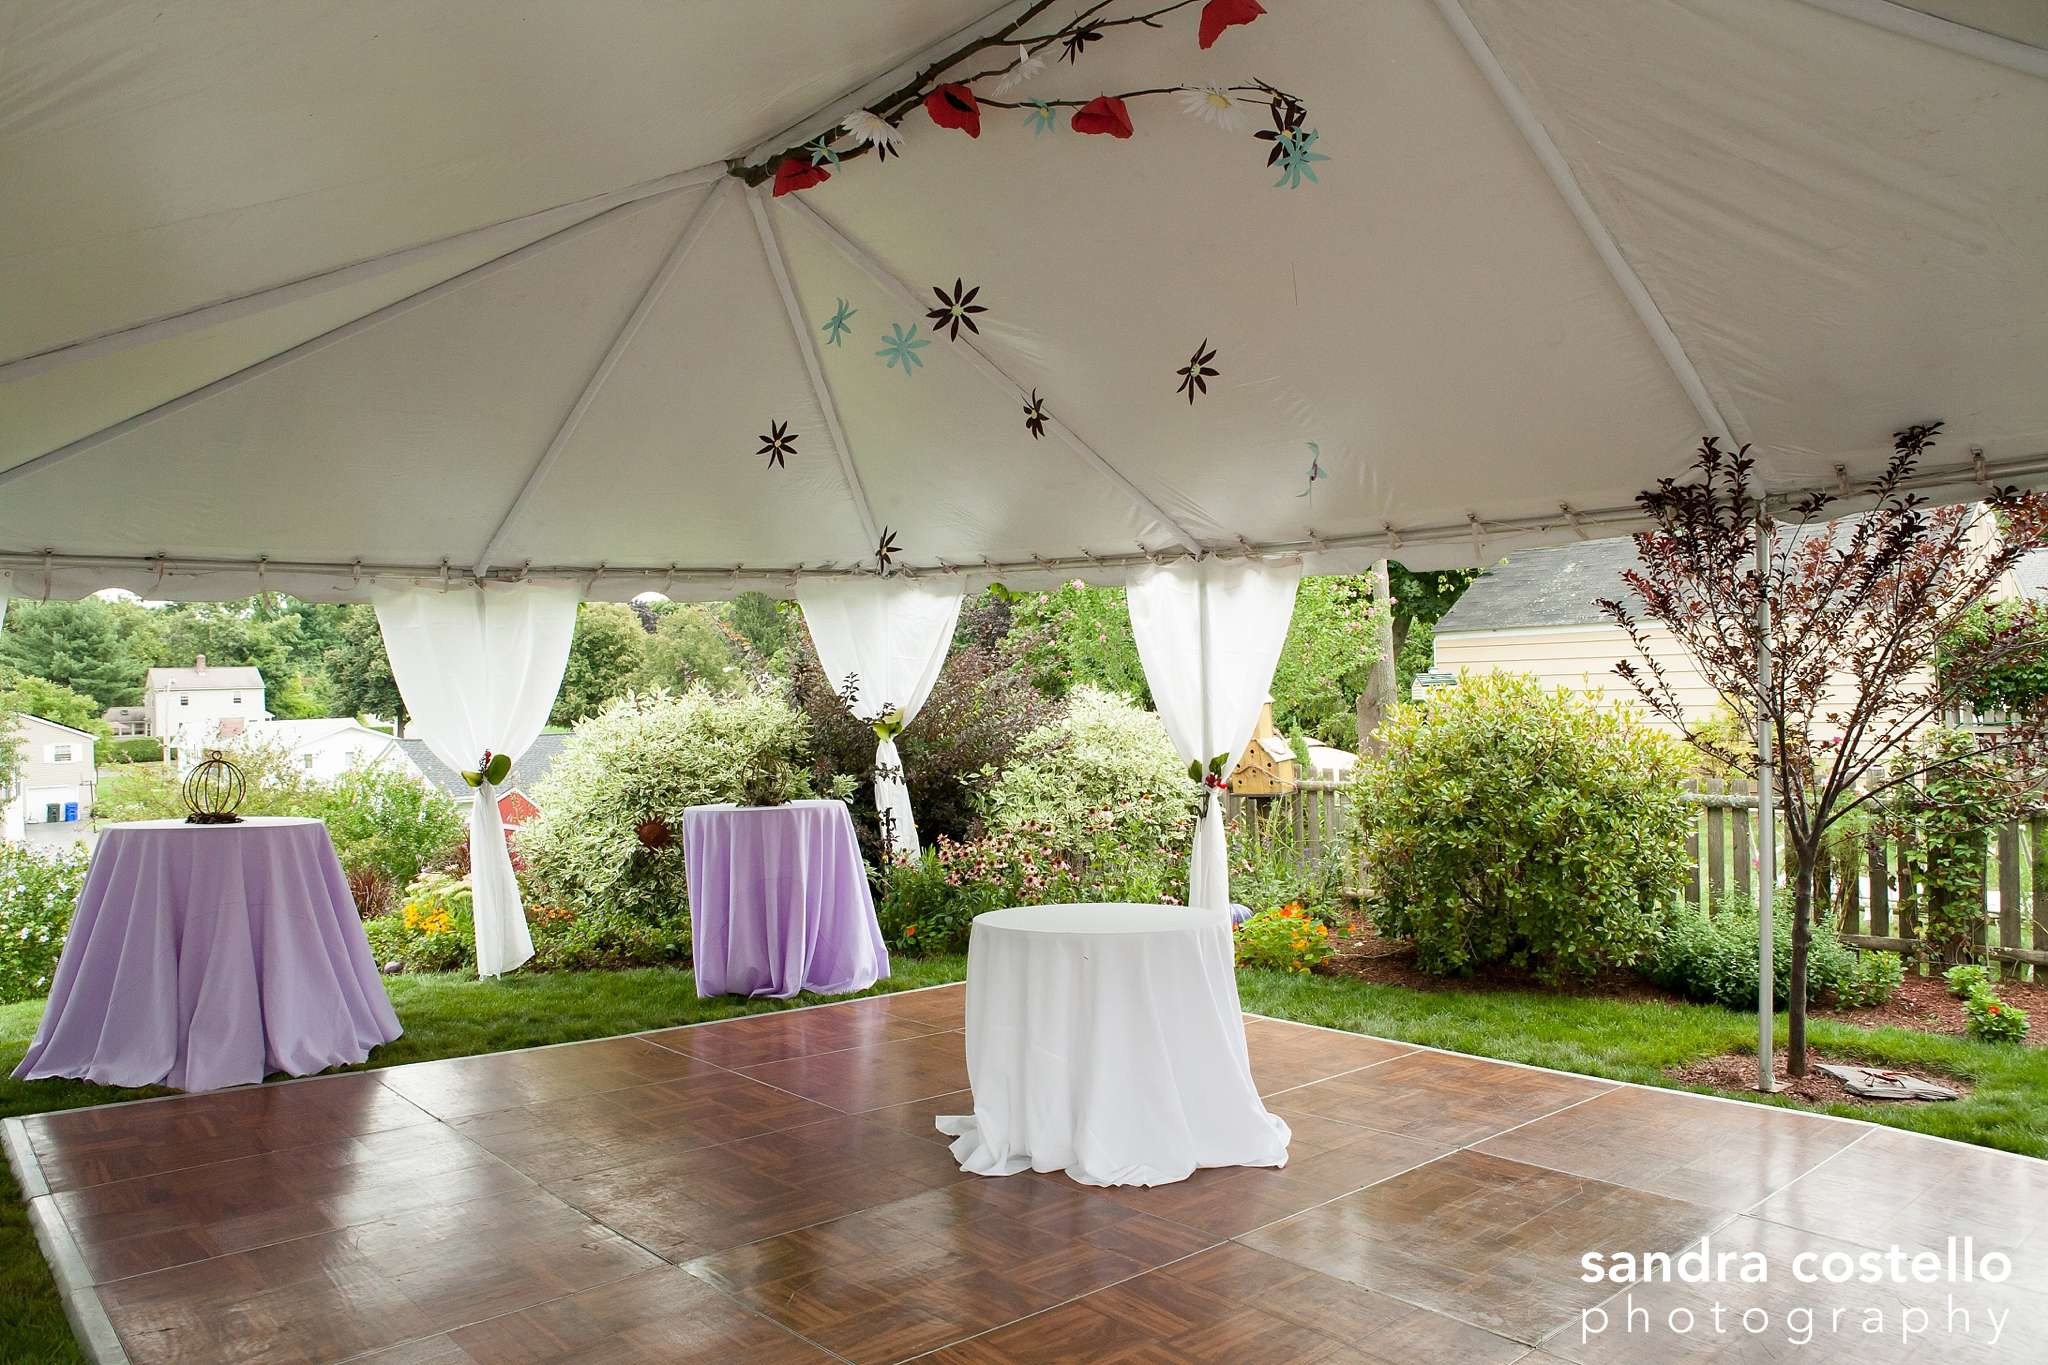 We covered all of the legs in white leg skirts and installed elegant string lights around the perimeter of the tent. The brides hung homemade paper flowers ... & Michaels Party Rentals » Blog Archive » Perfect Garden Wedding